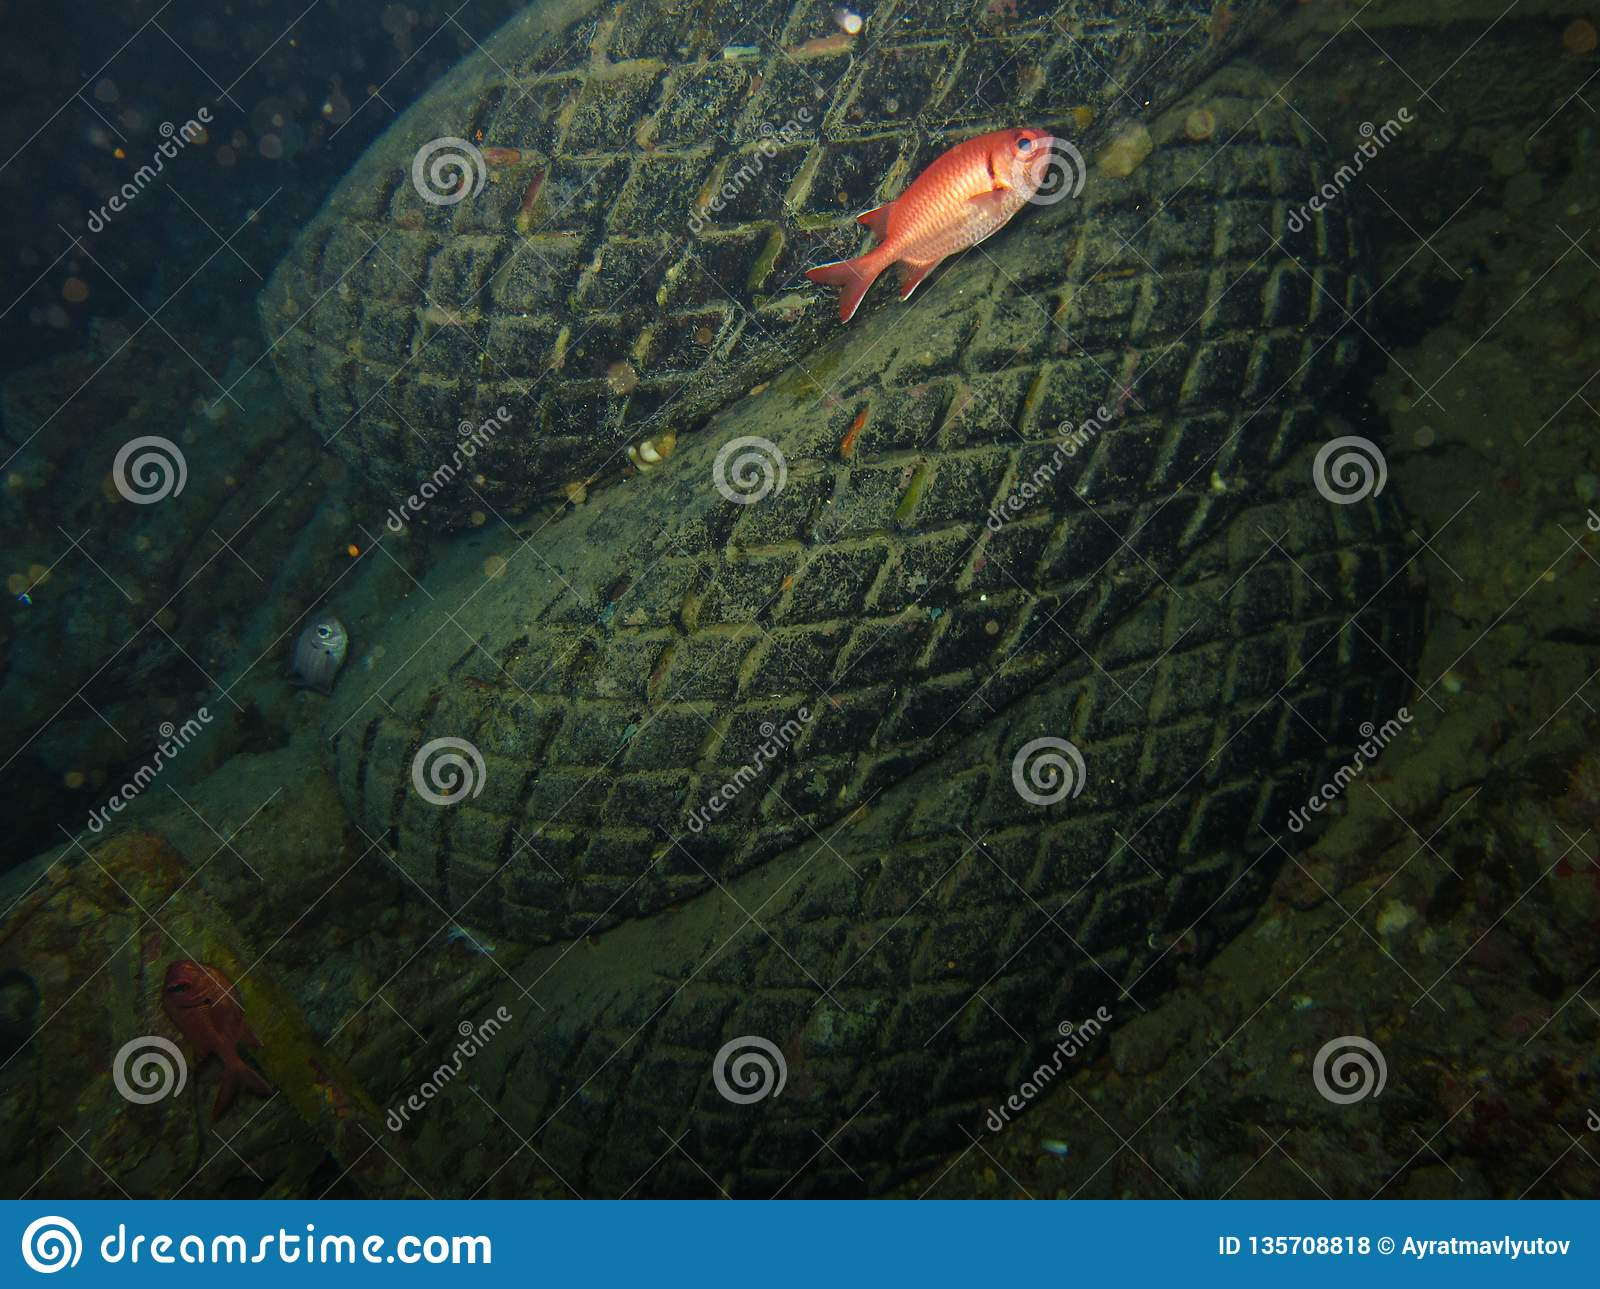 Underwater world in deep water in coral reef and plants flowers flora in blue world marine wildlife, Fish, corals and sea creature